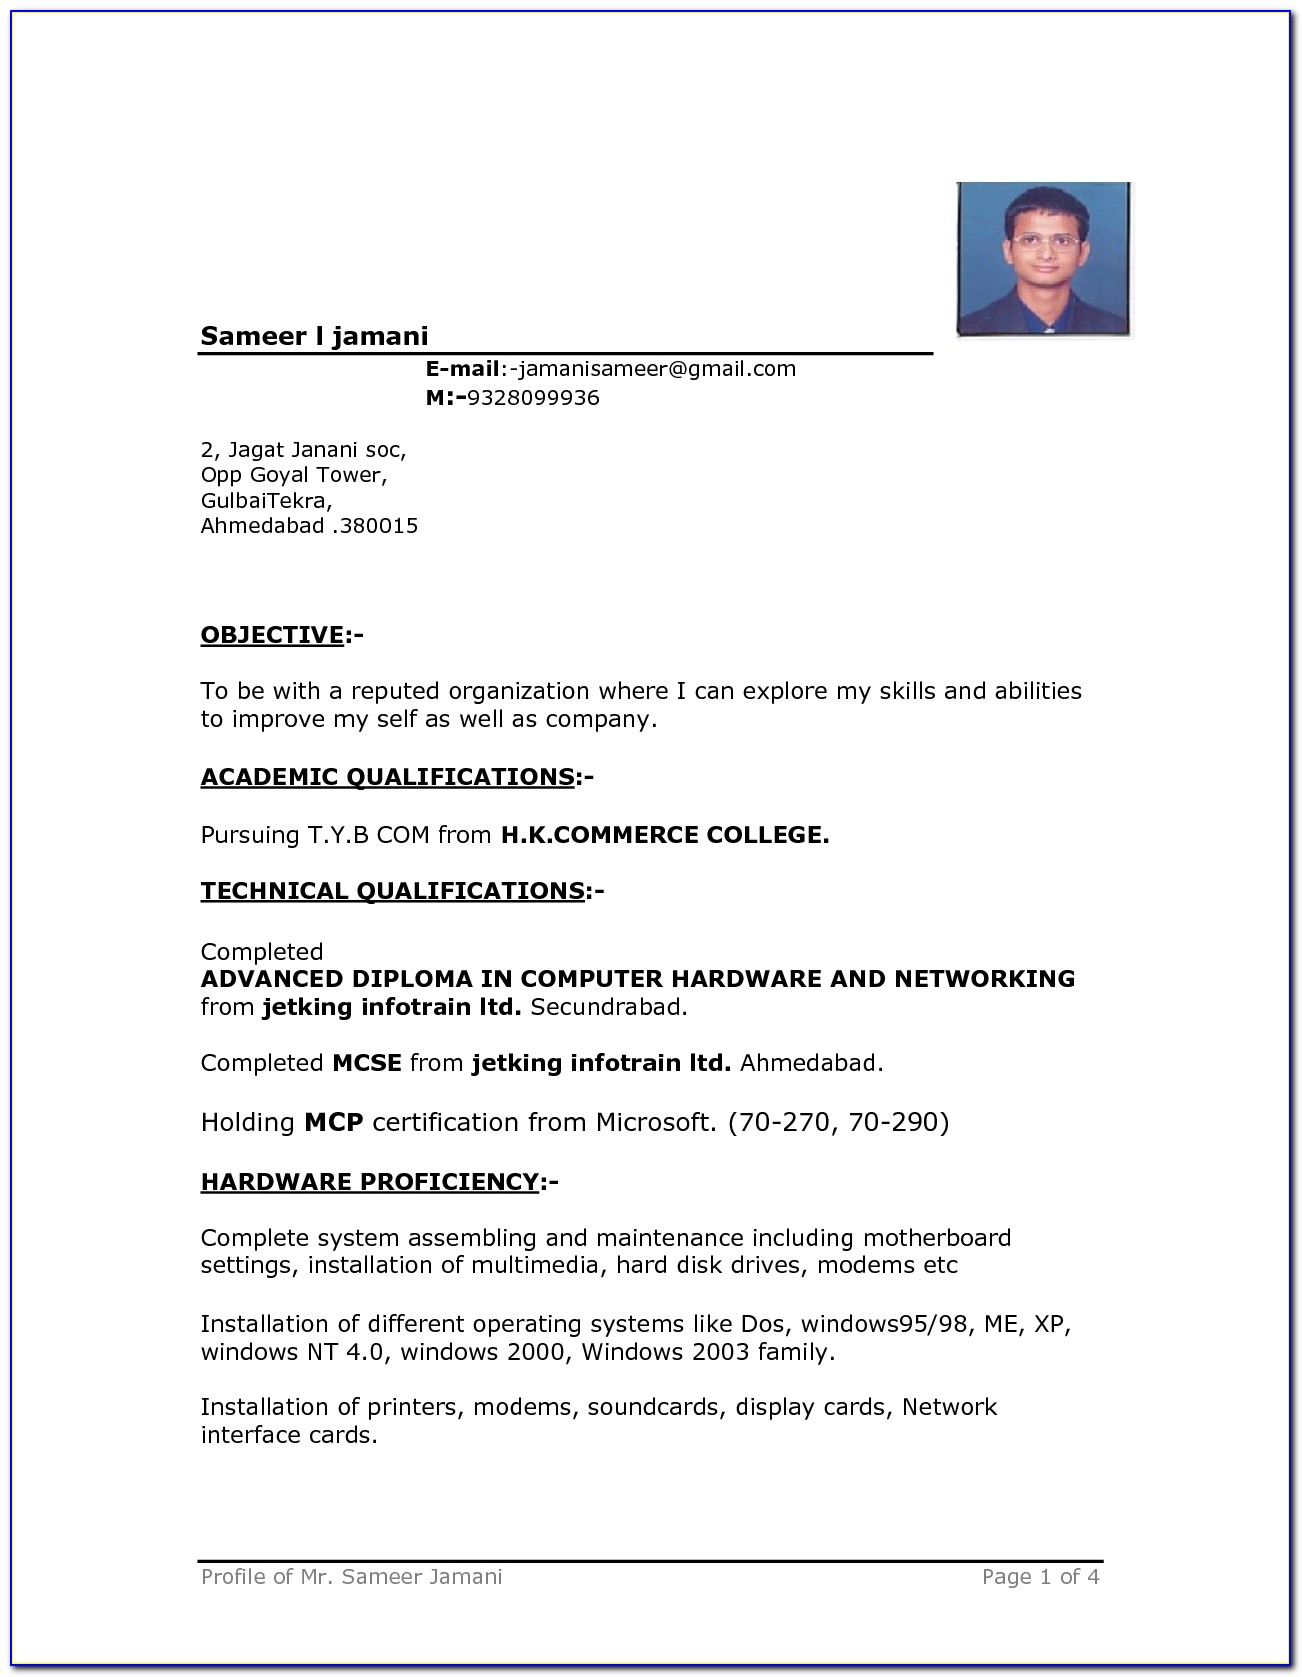 Doc.#612790: Resume Samples In Word Format – 7 Free Resume Inside Resume Template Microsoft Word 2017